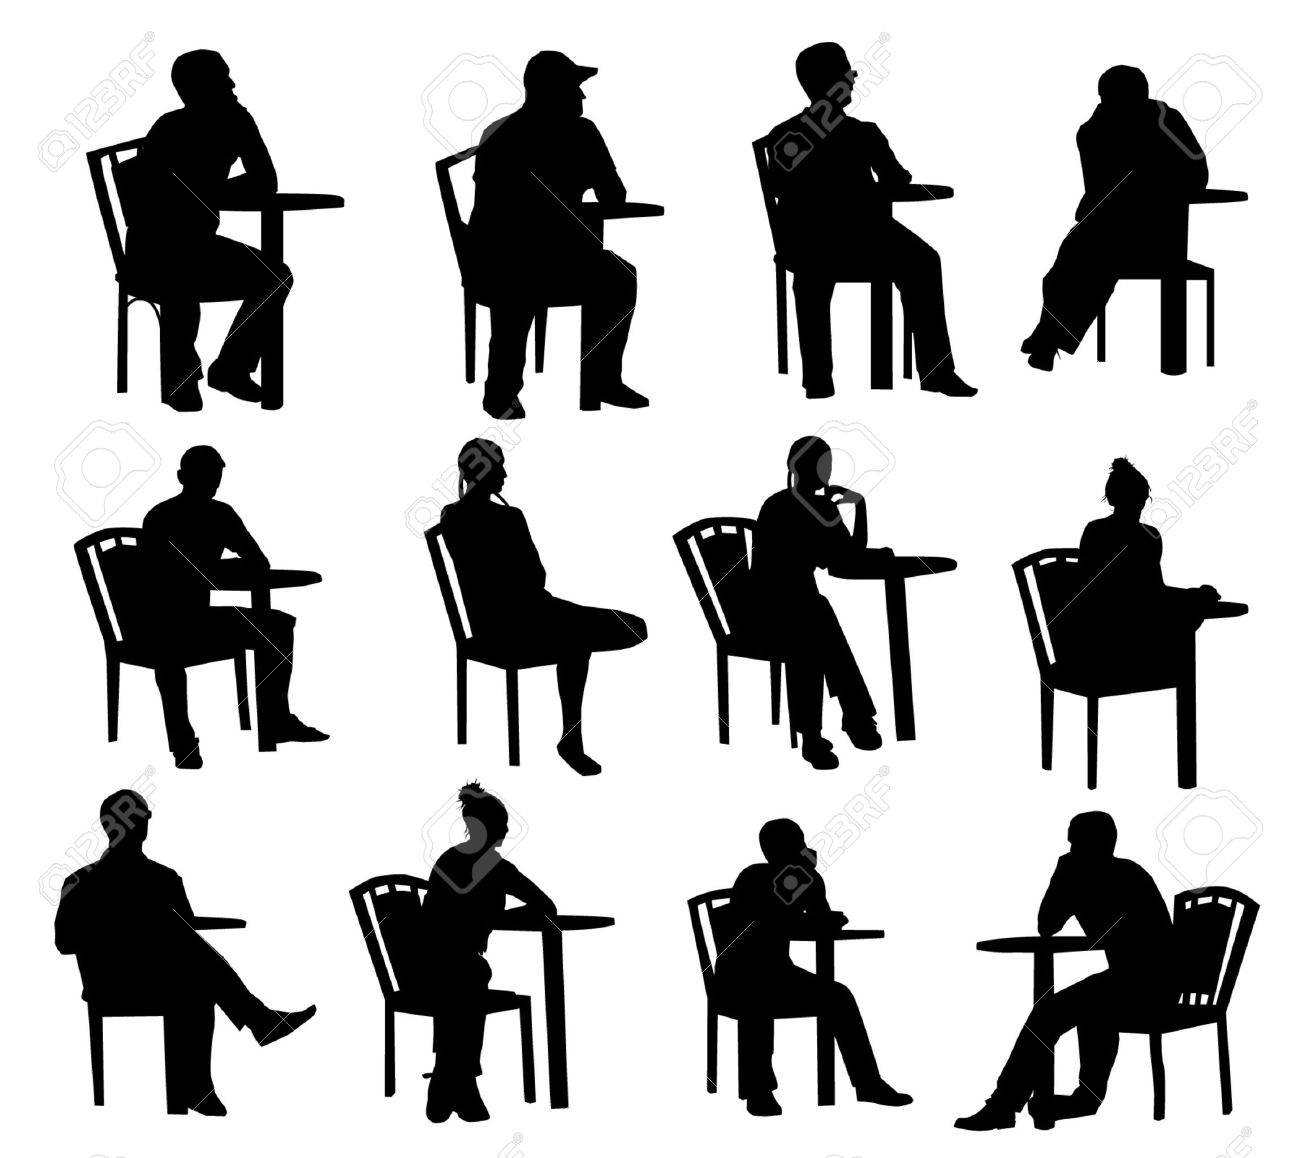 Sitting Silhouettes Royalty Free Cliparts, Vectors, And Stock ...